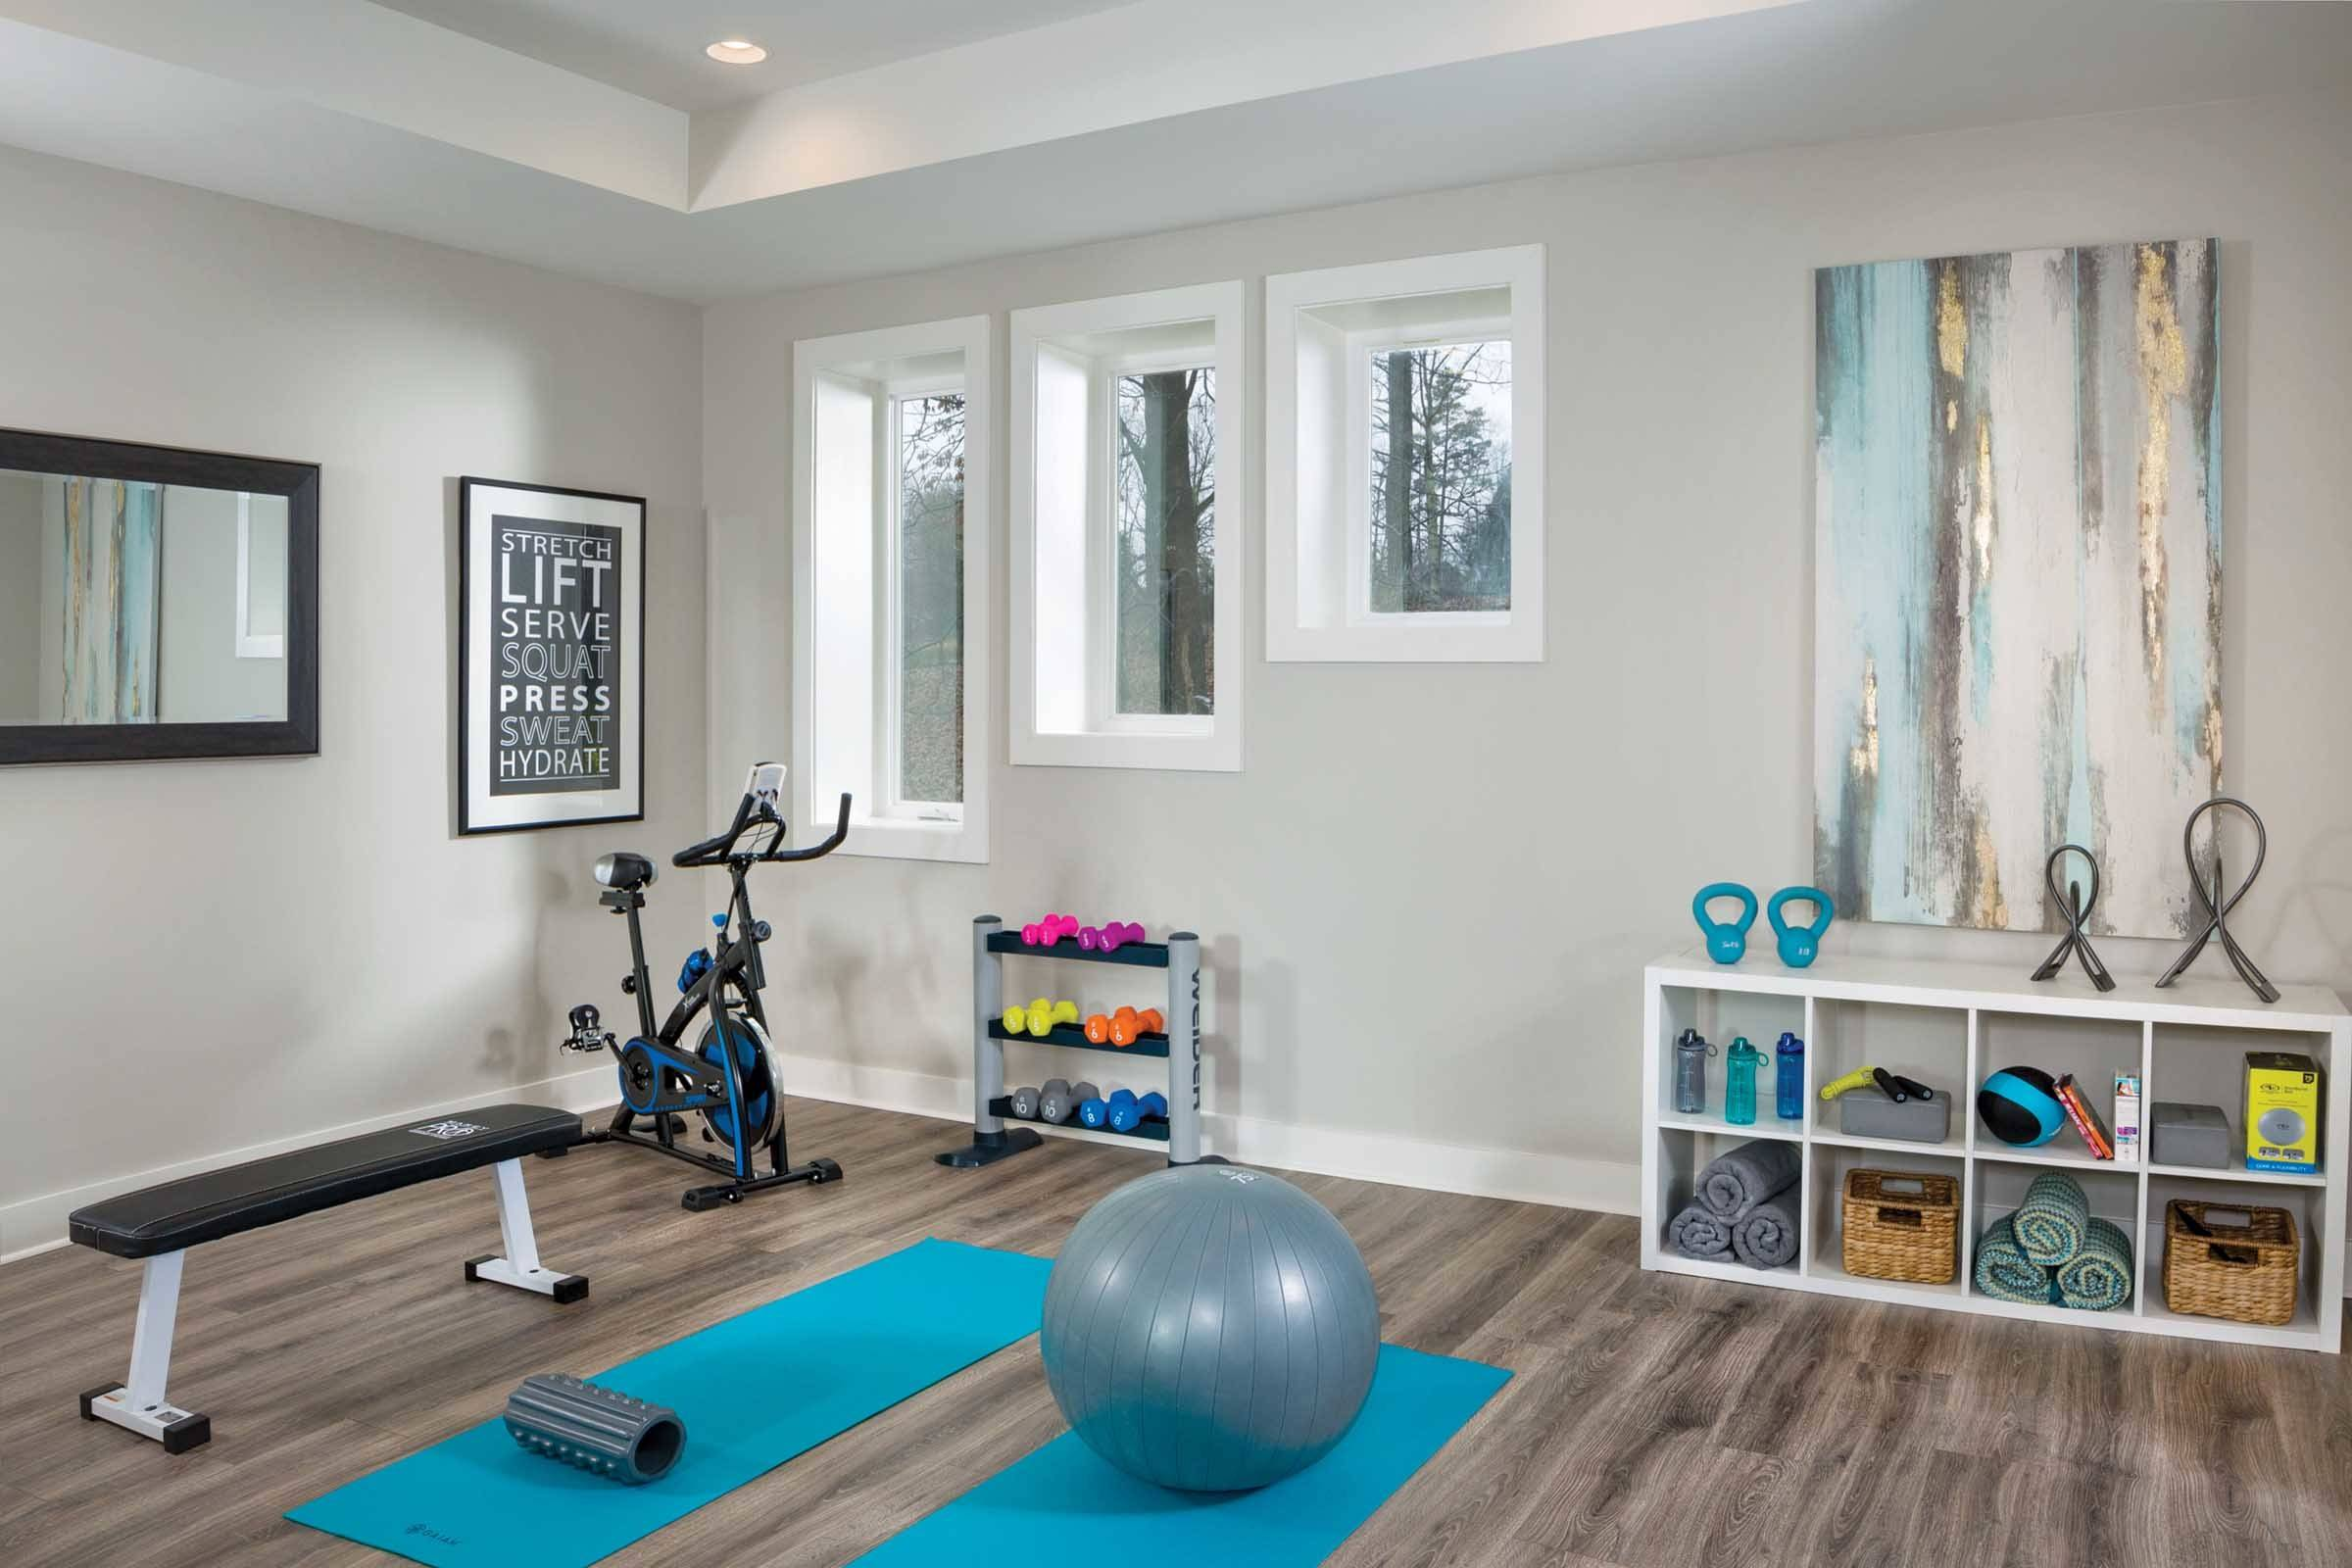 17 Beautiful Home Gym Pictures & Ideas - September, 17  Houzz